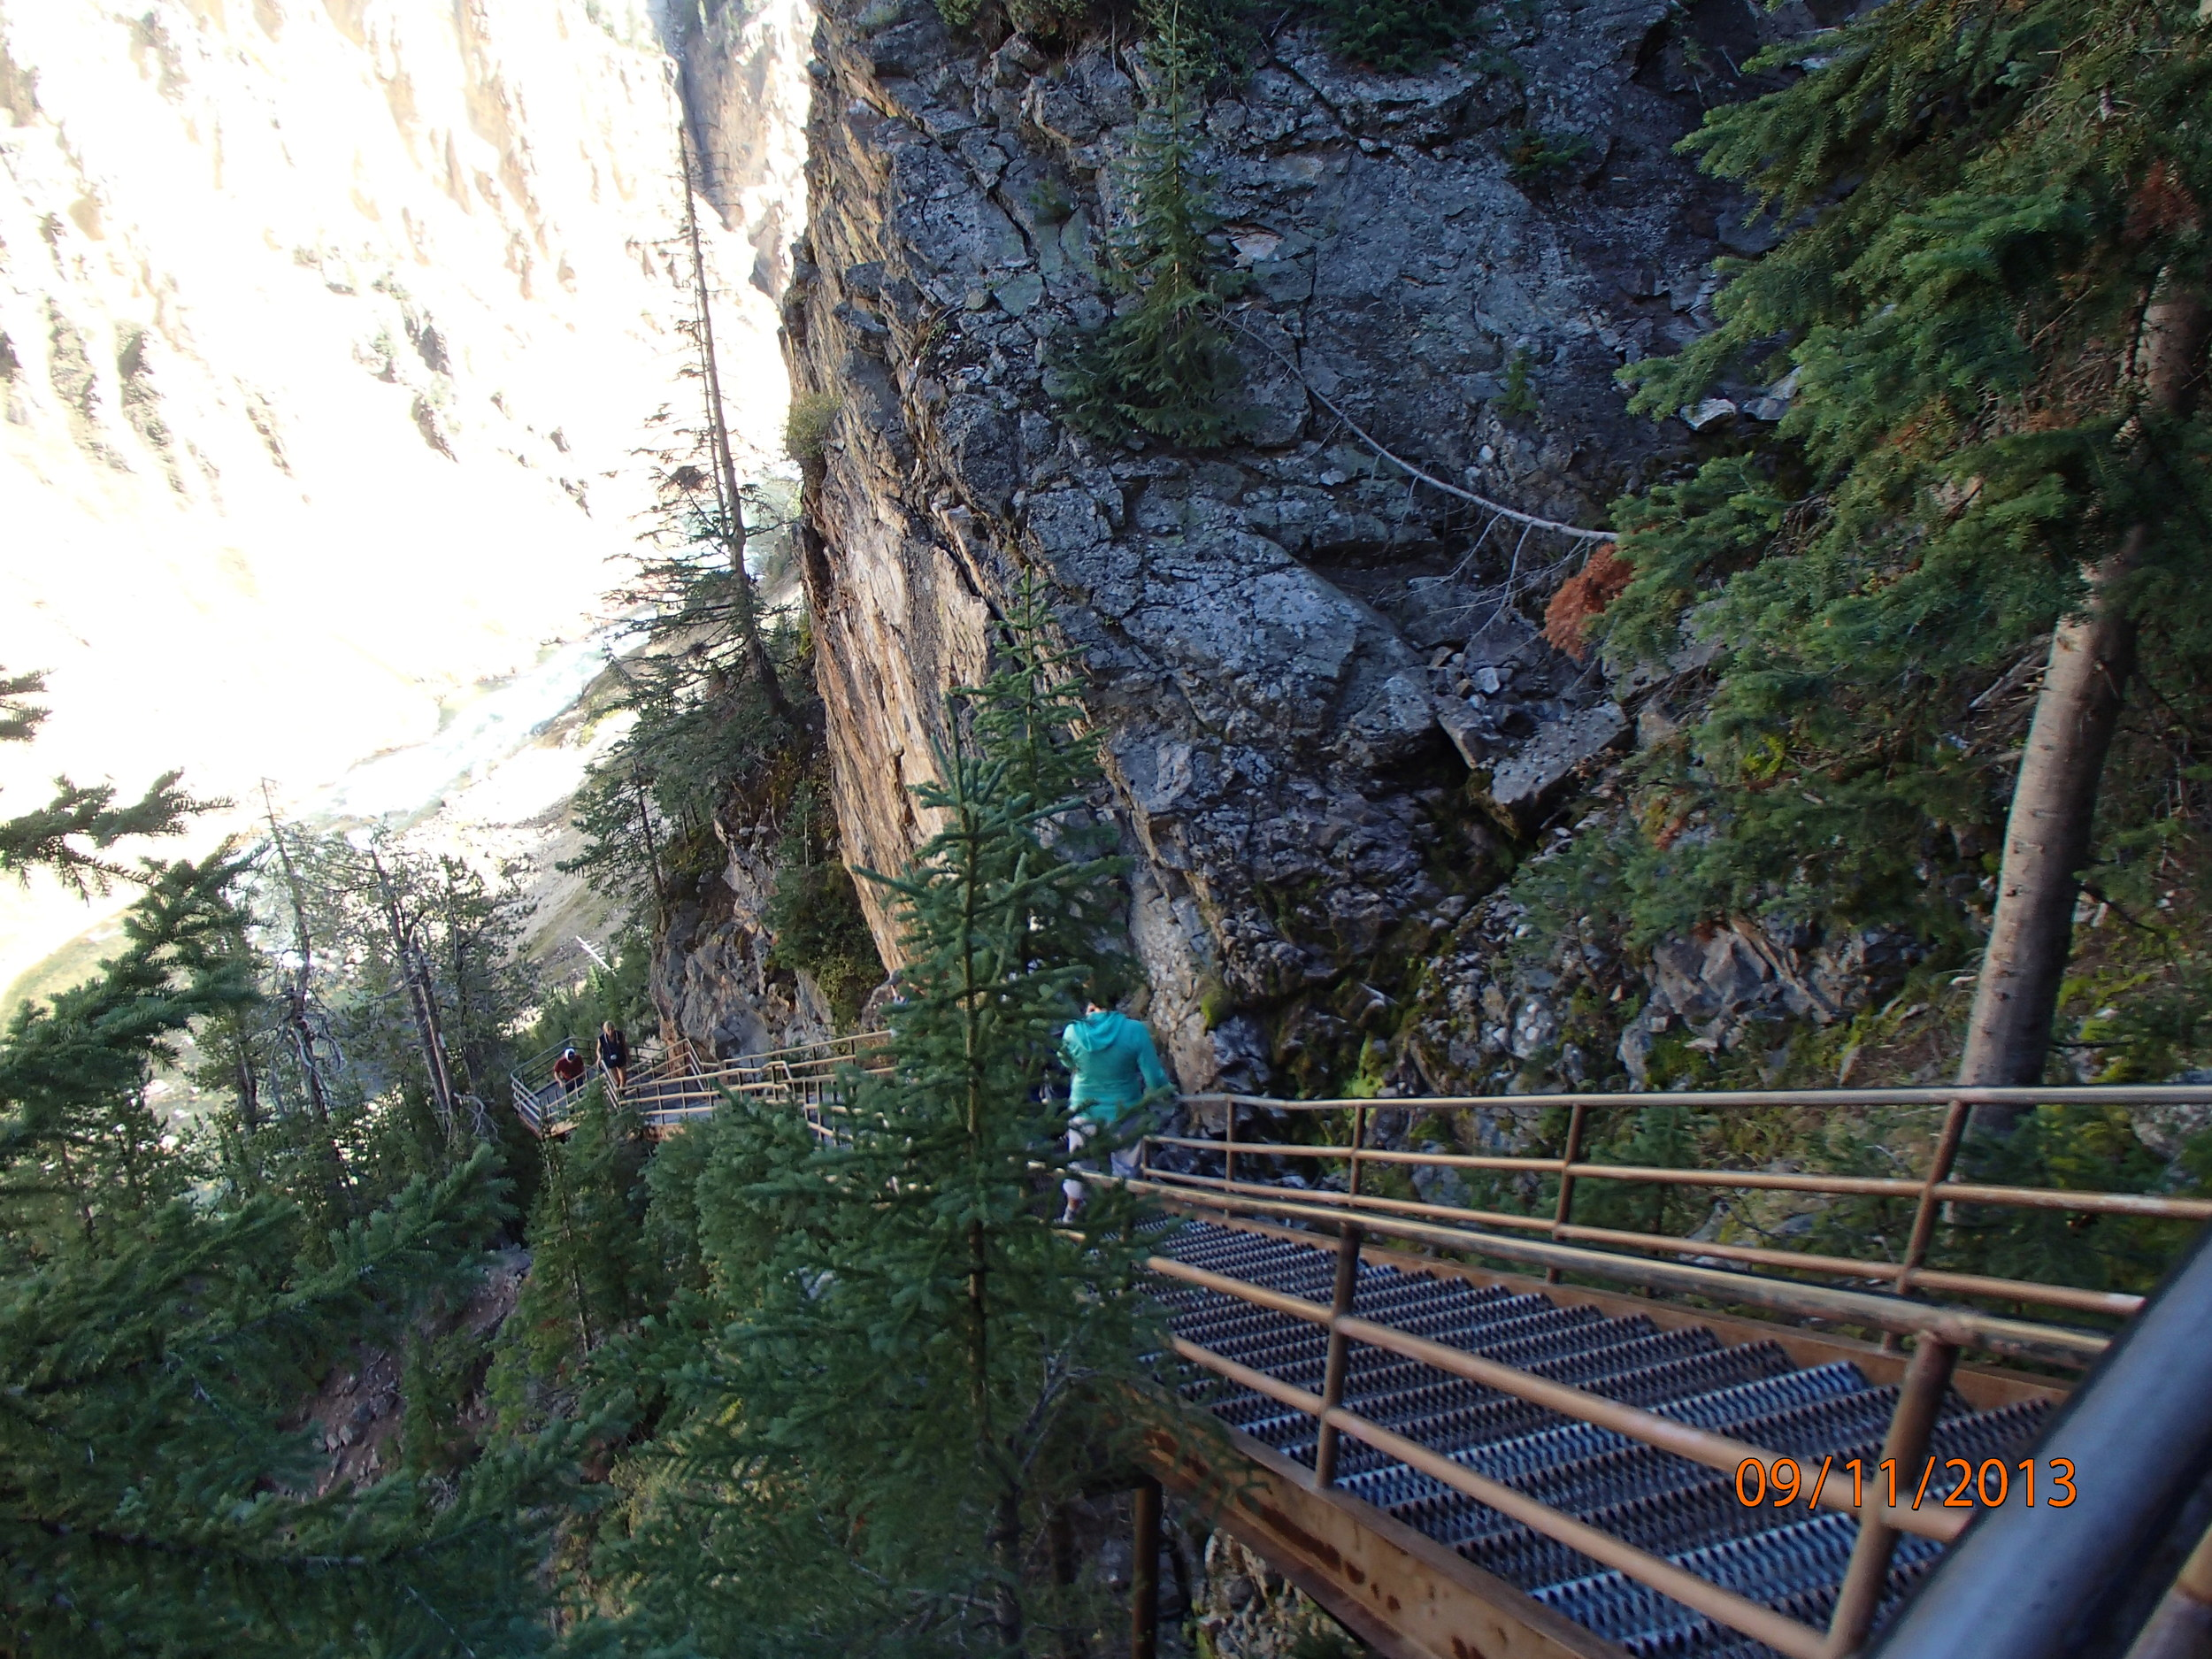 328 stairs to a viewpoint: another way to escape the Waddle Zone